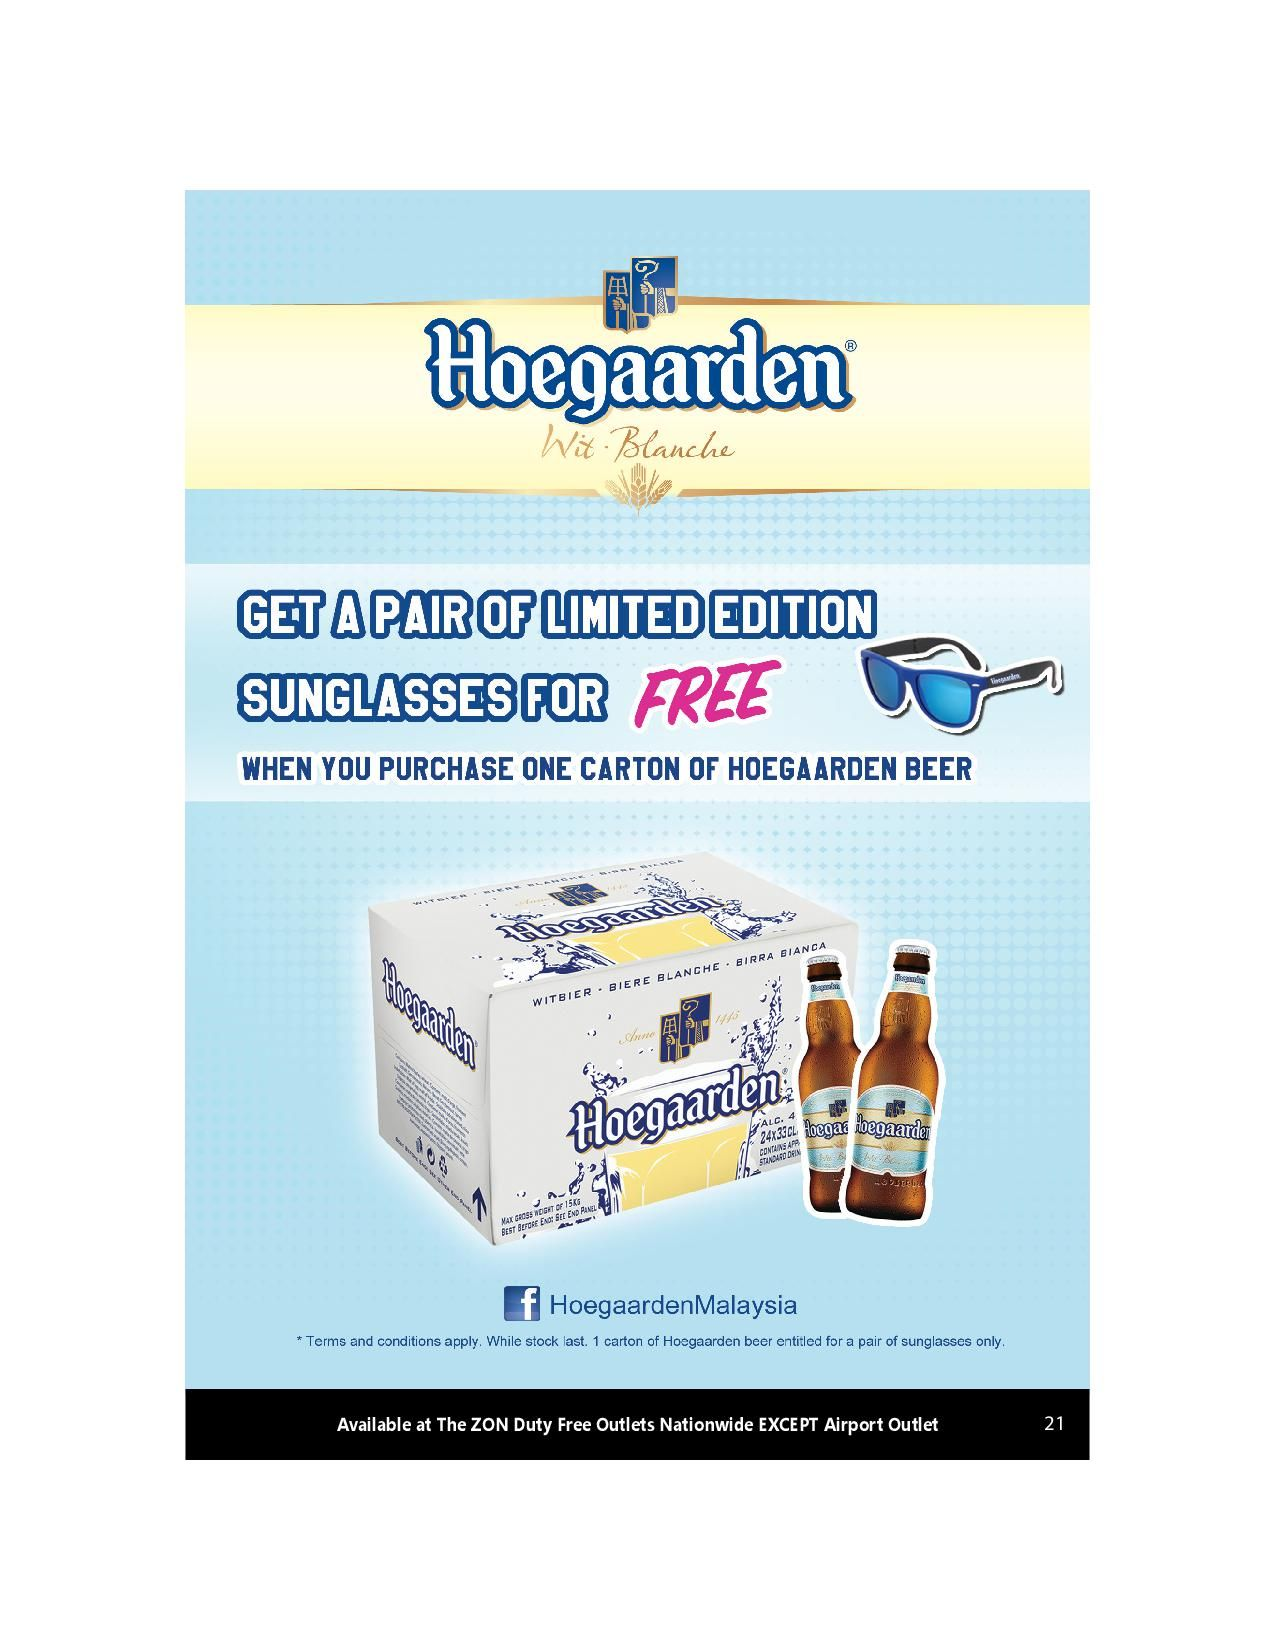 5820318205f Hoegaarden Get FREE Limited Edition Sunglasses! With 1 Carton Hoegaarden  Beer (Entitled to a pair of sunglasses) Available at The ZON Duty Free  outlets ...